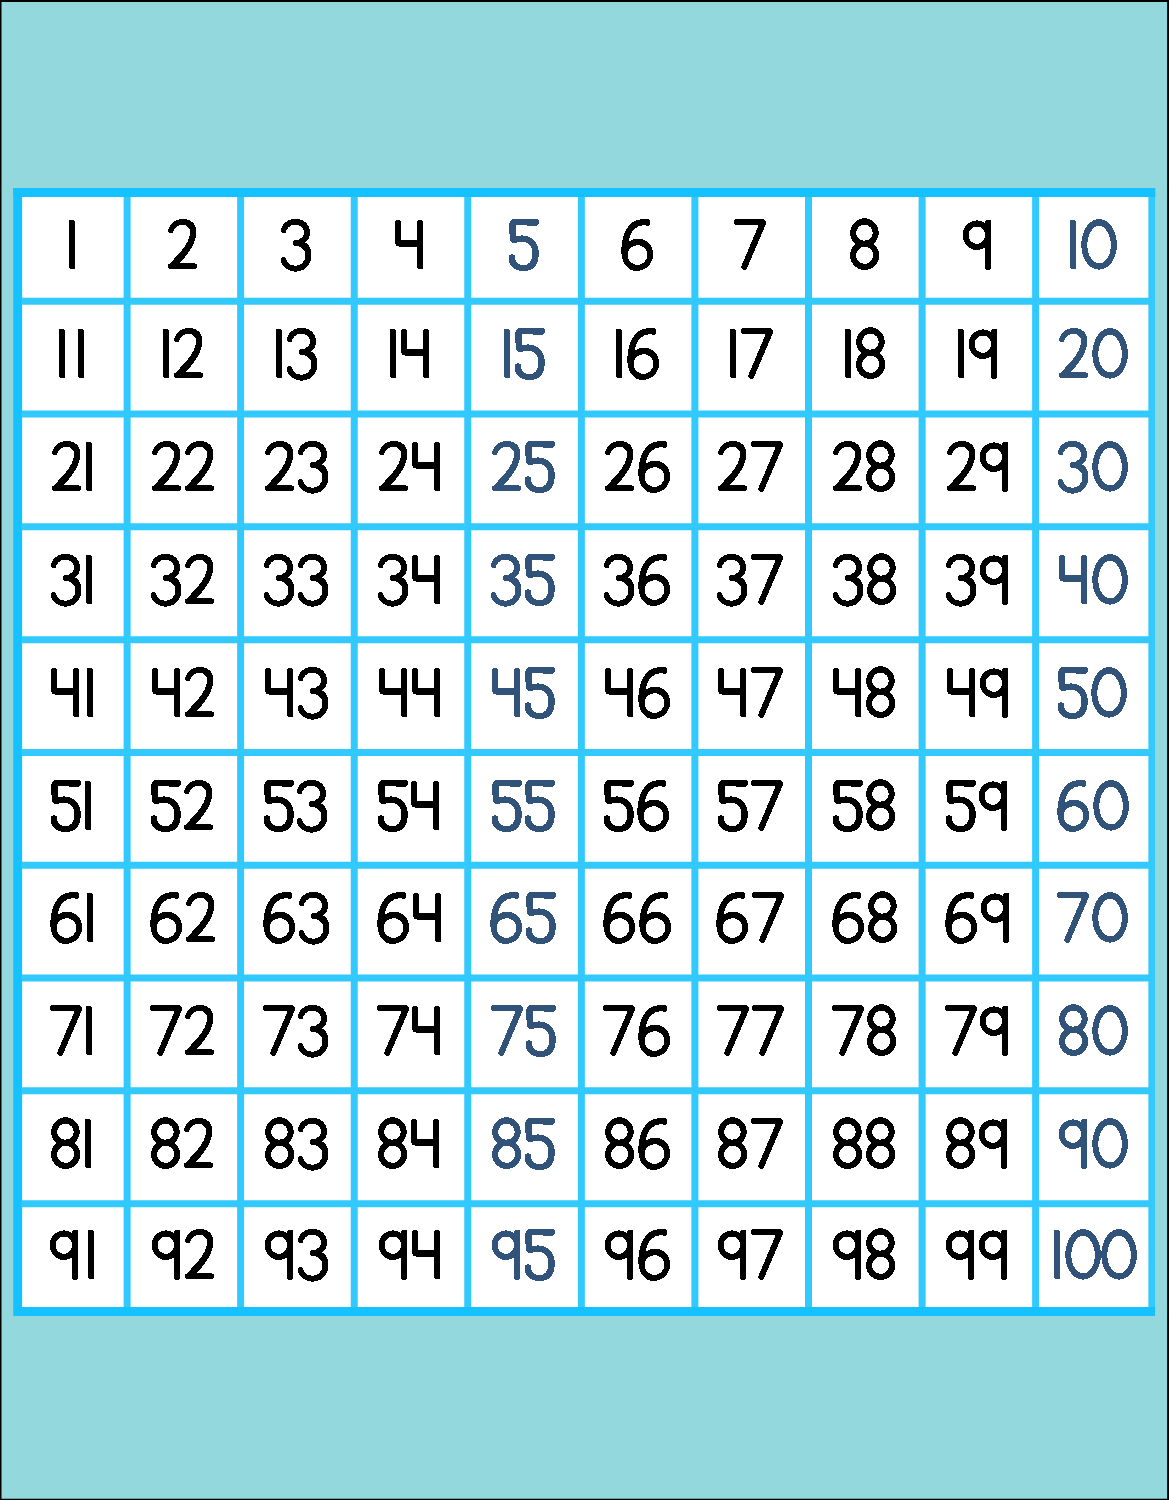 Free Printable Hundreds 100 Chart, Great For Bulletin Boards, Math - Free Printable 100 Chart